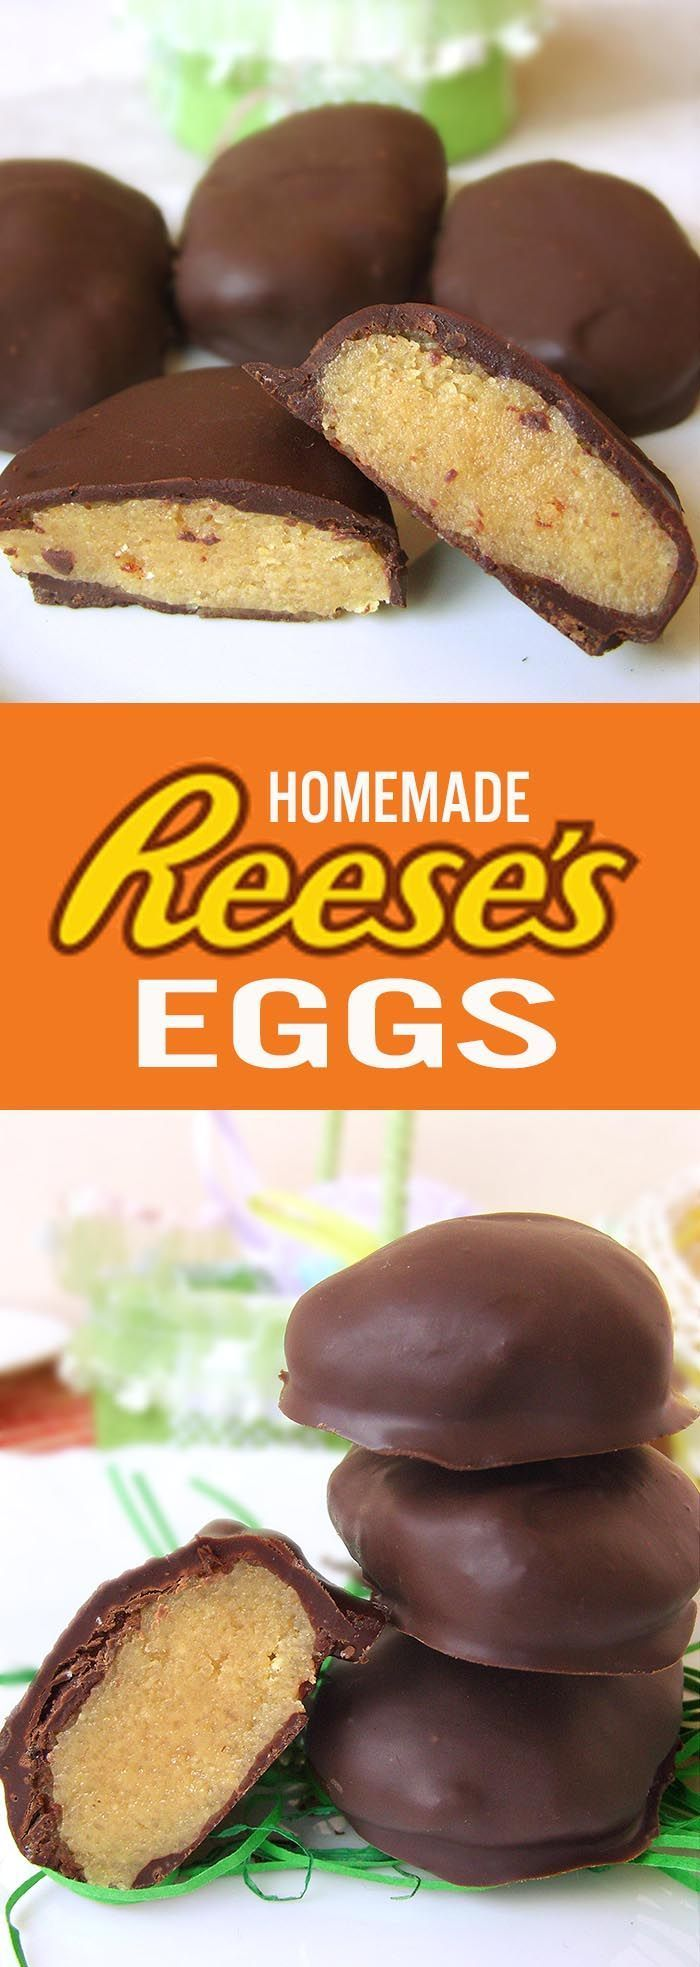 5-ingredient Peanut Butter stuffed Reese's eggs Copycat recipe. My brother will absolutely love these.